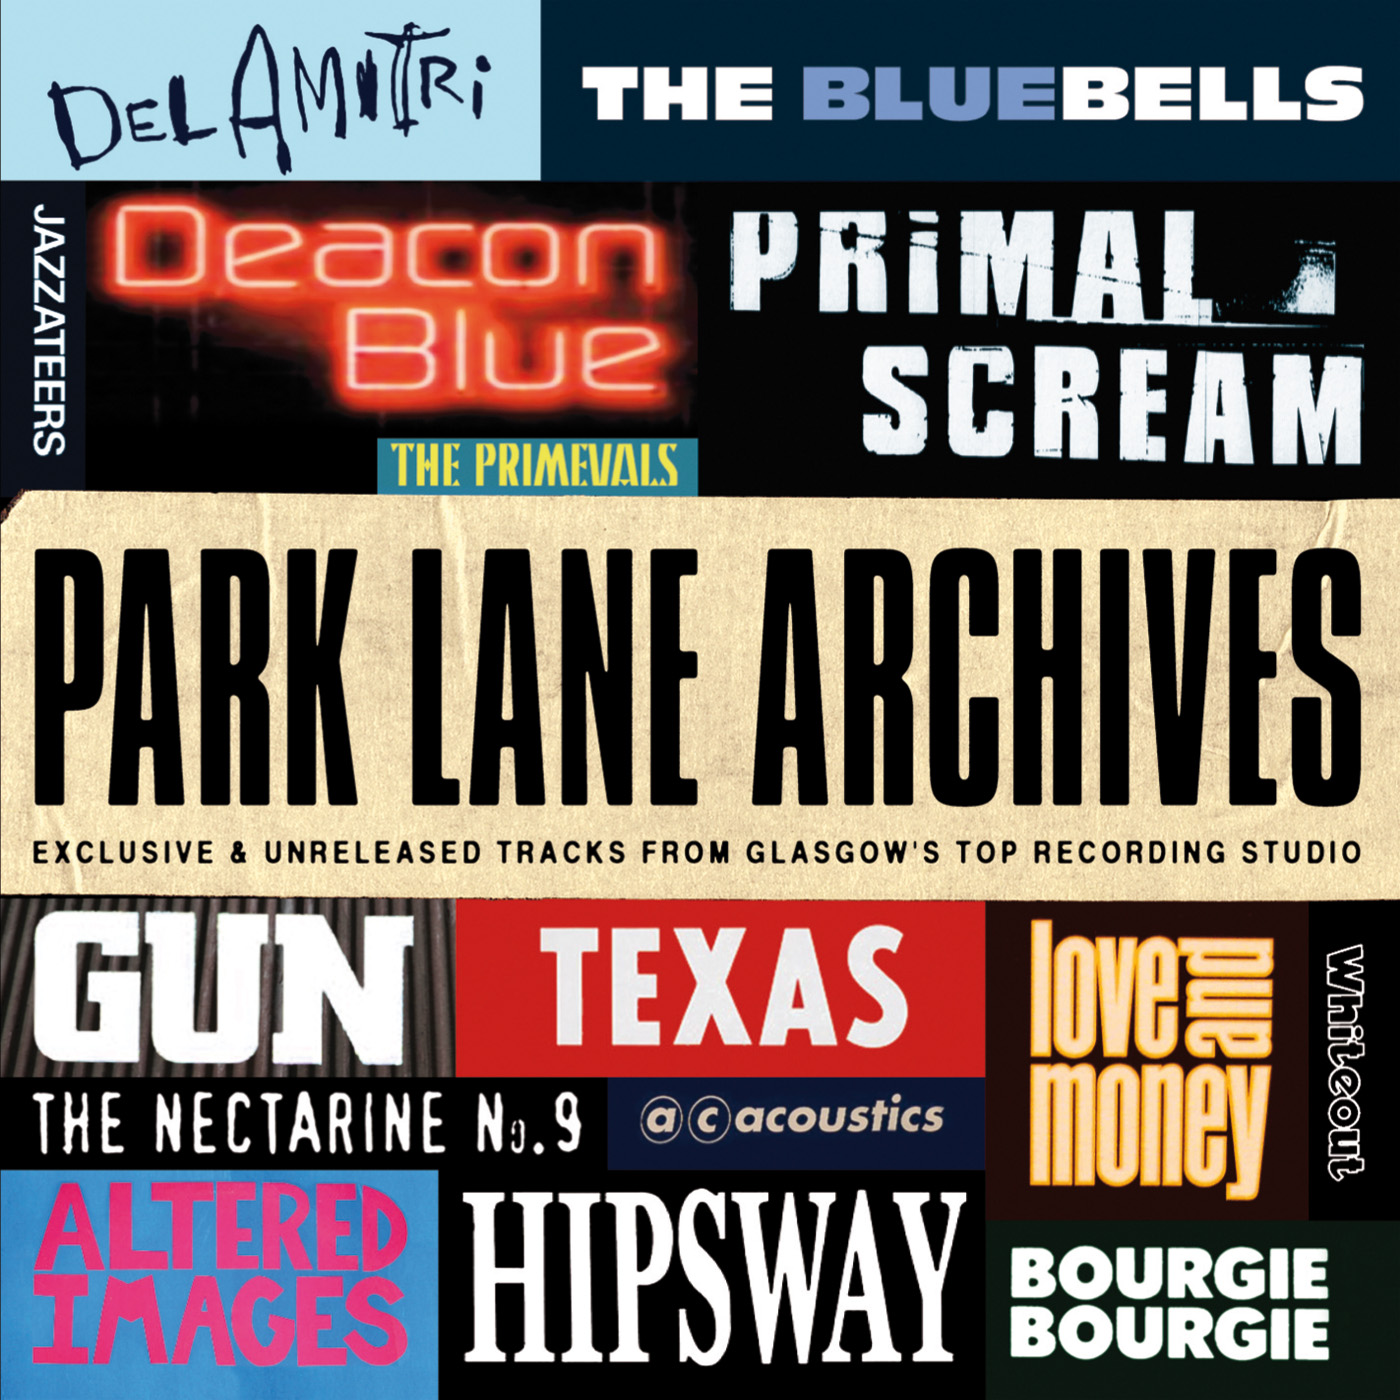 Park Lane Archives cover